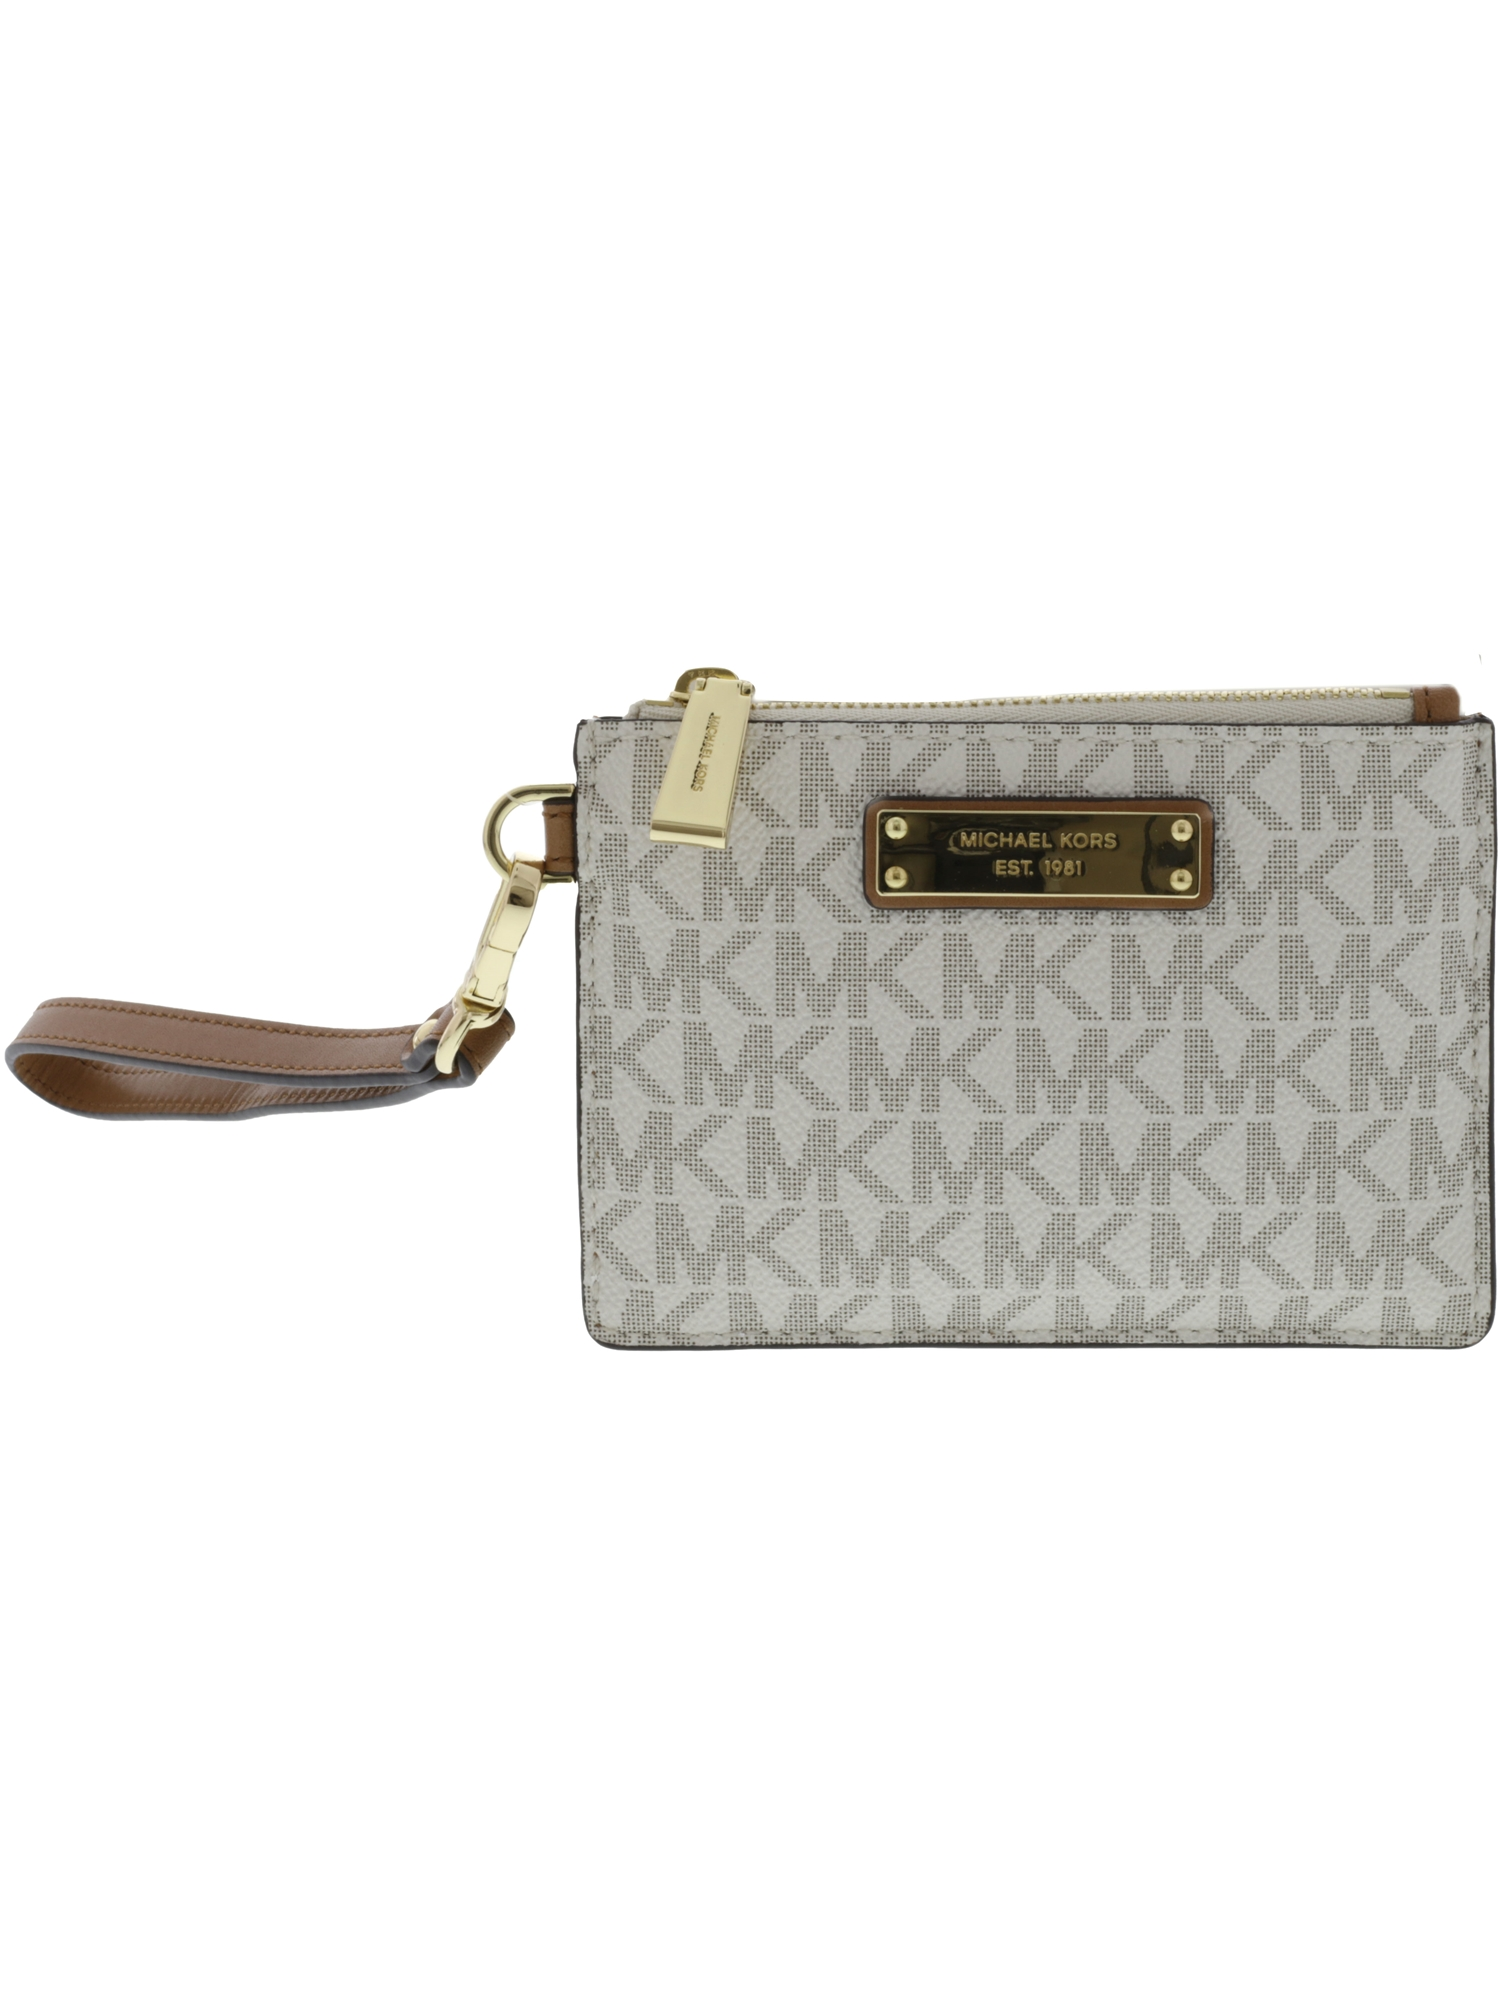 Michael Kors Women's Mercer Logo Fabric Coin Purse - Vanilla